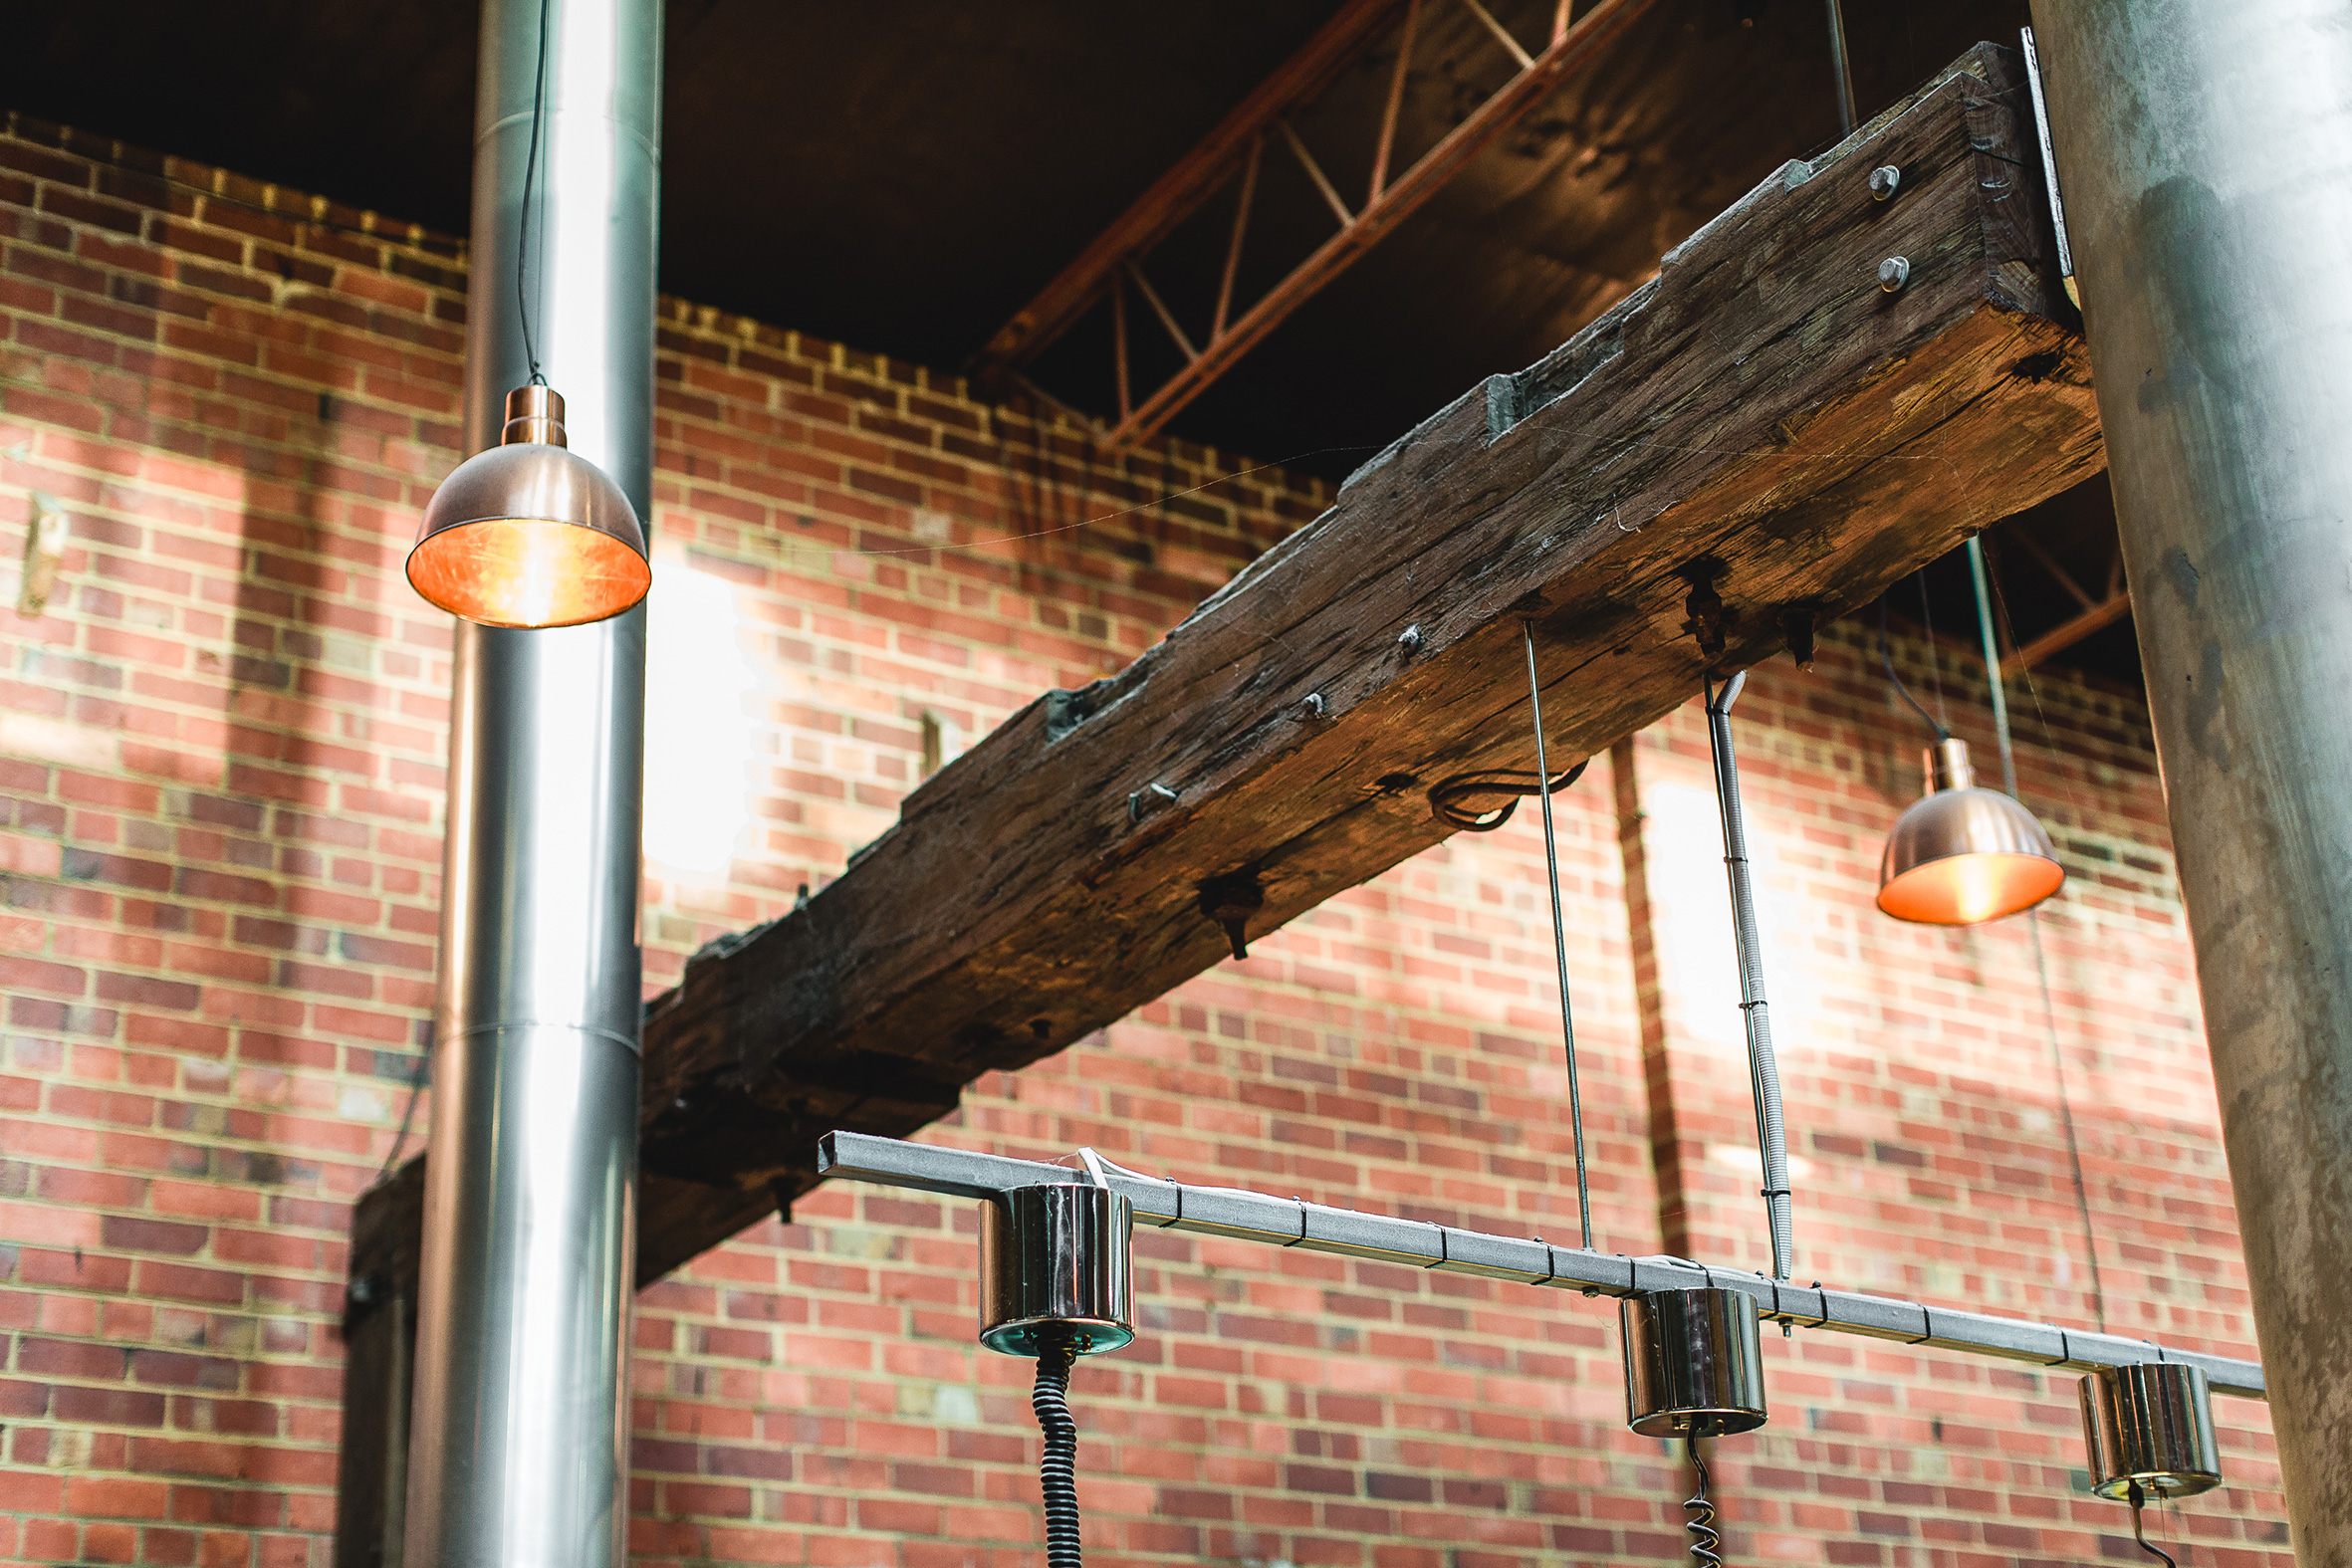 The-Epicurean_History_Industrial_Packing-Shed_Beams_Features.jpg